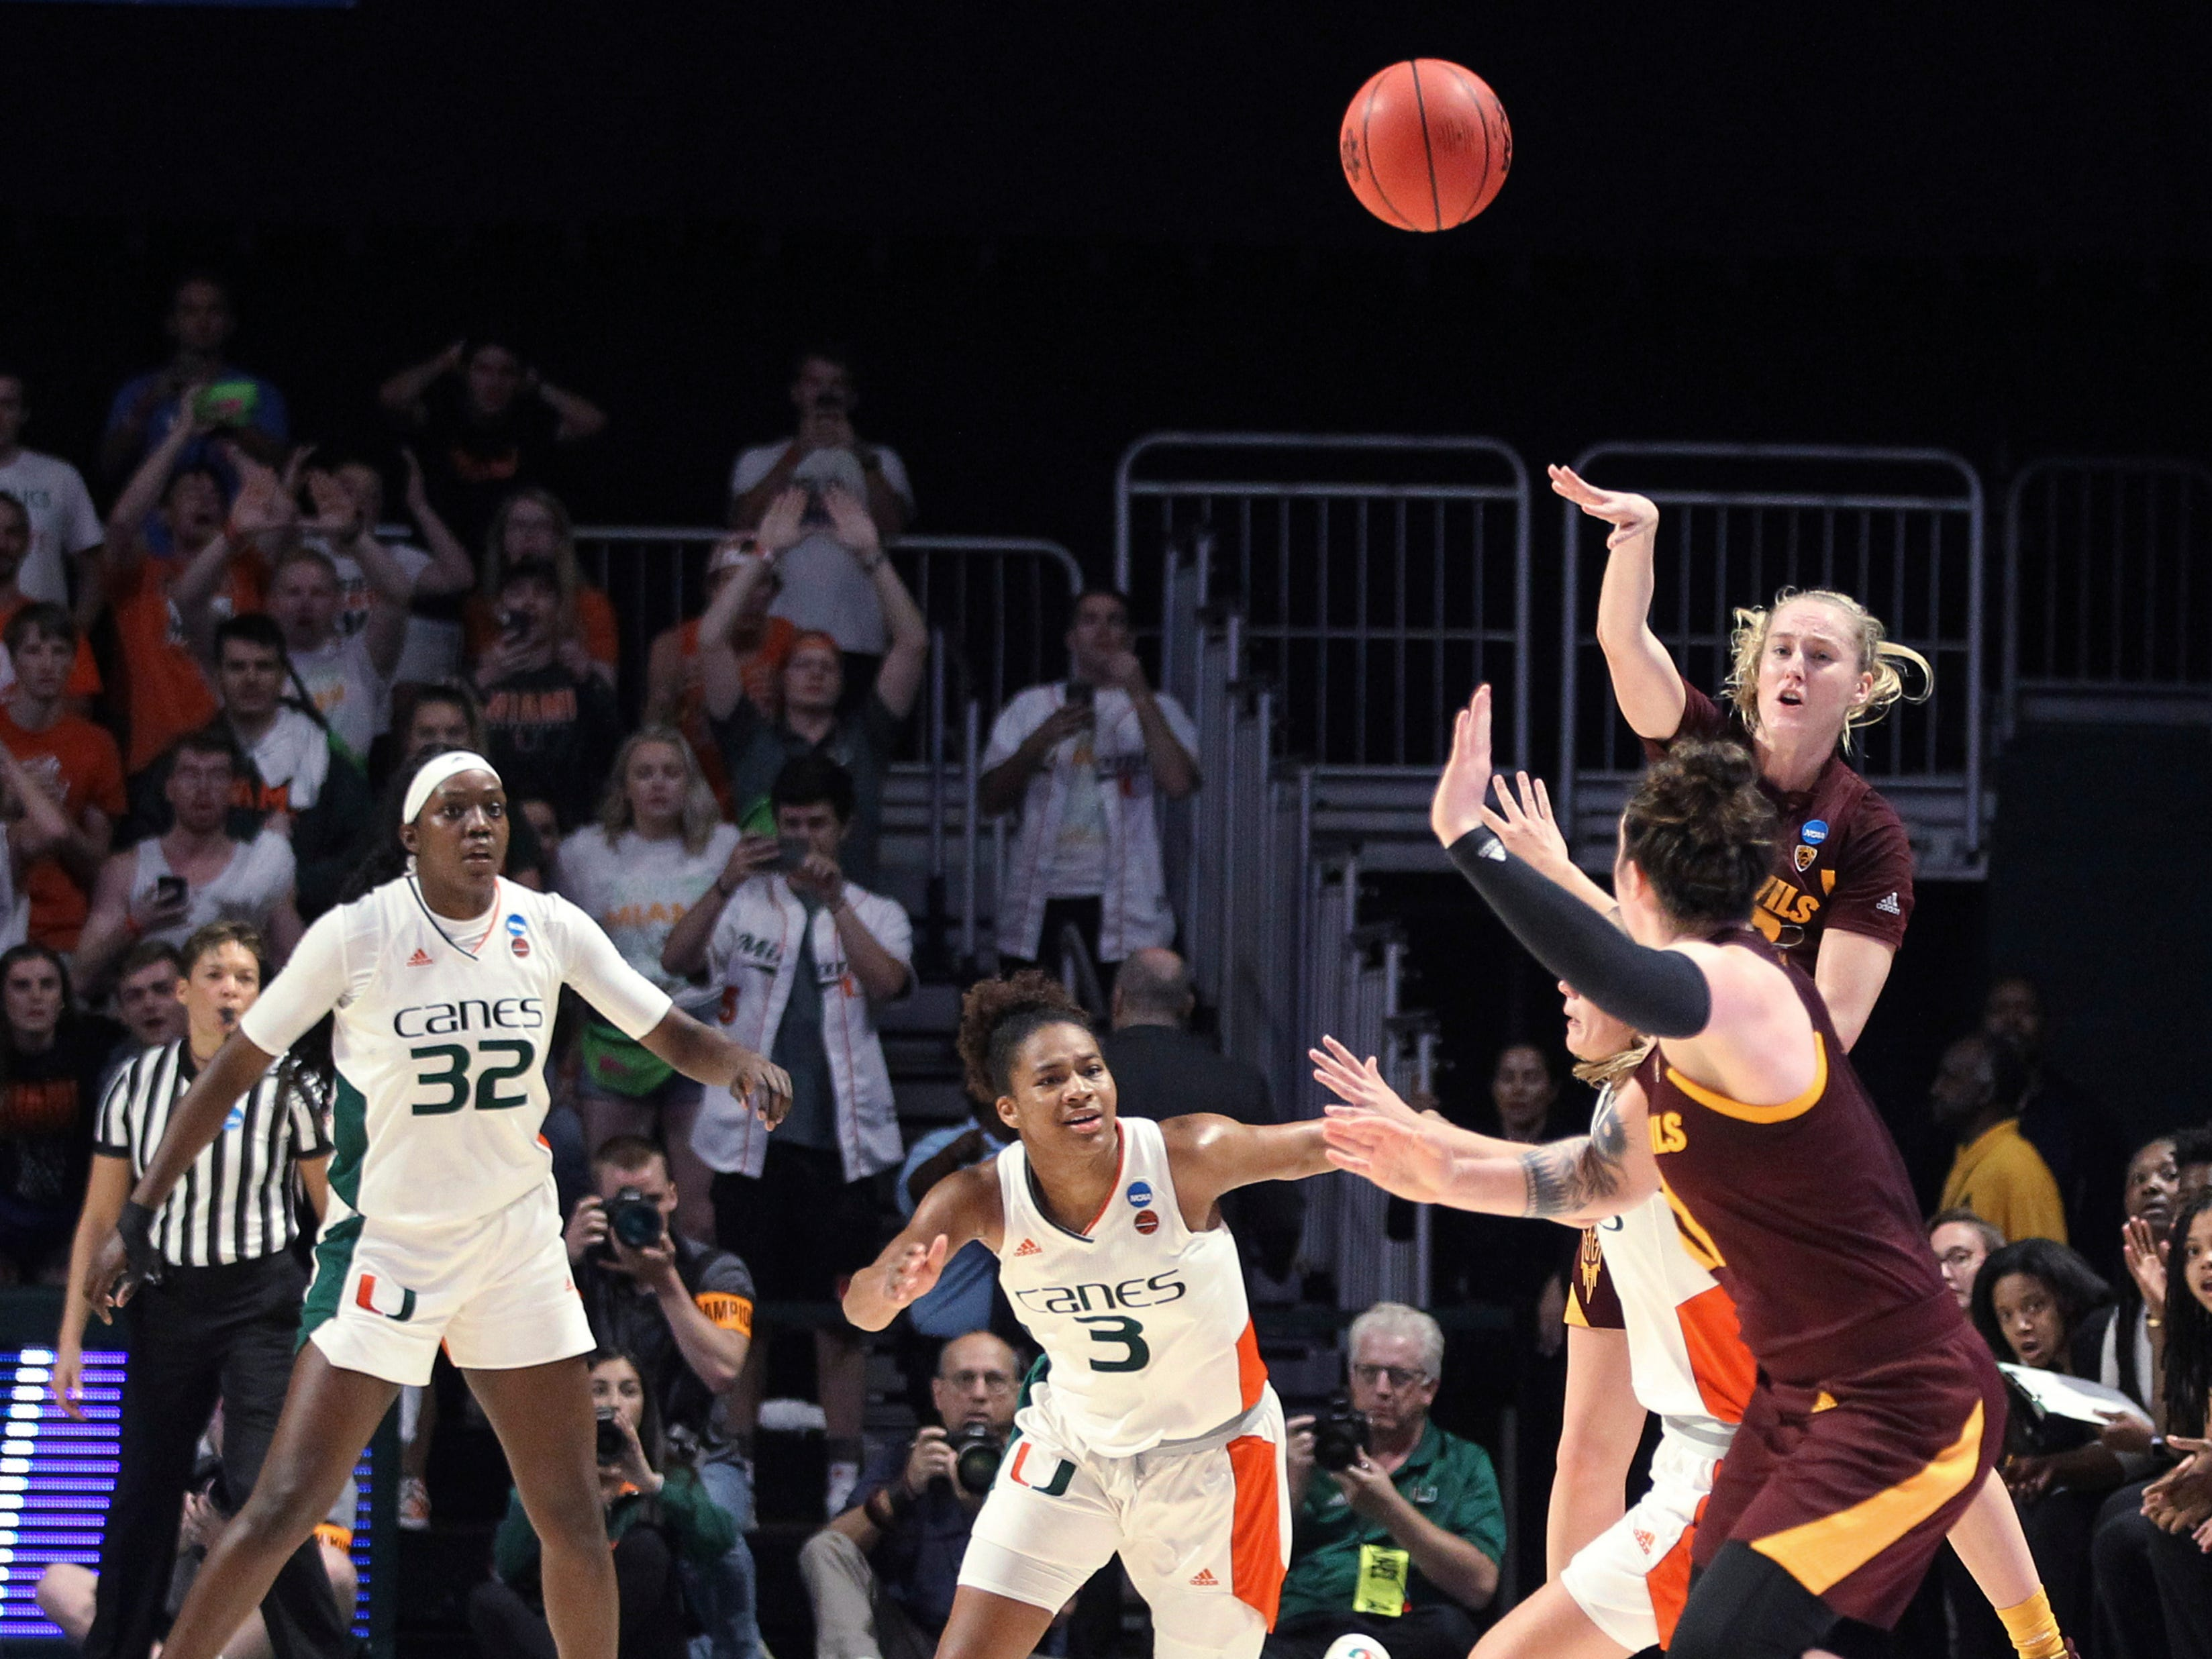 Arizona State's Courtney Ekmark, top right, throws the ball to reammate Robbi Ryan, front right, as Miami's Beatrice Mompremier (32) and Endia Banks (3) defend during a second-round women's college basketball game in the NCAA Tournament, Sunday, March 24, 2019, in Coral Gables, Fla. Arizona State won 57-55. (AP Photo/Luis M. Alvarez)